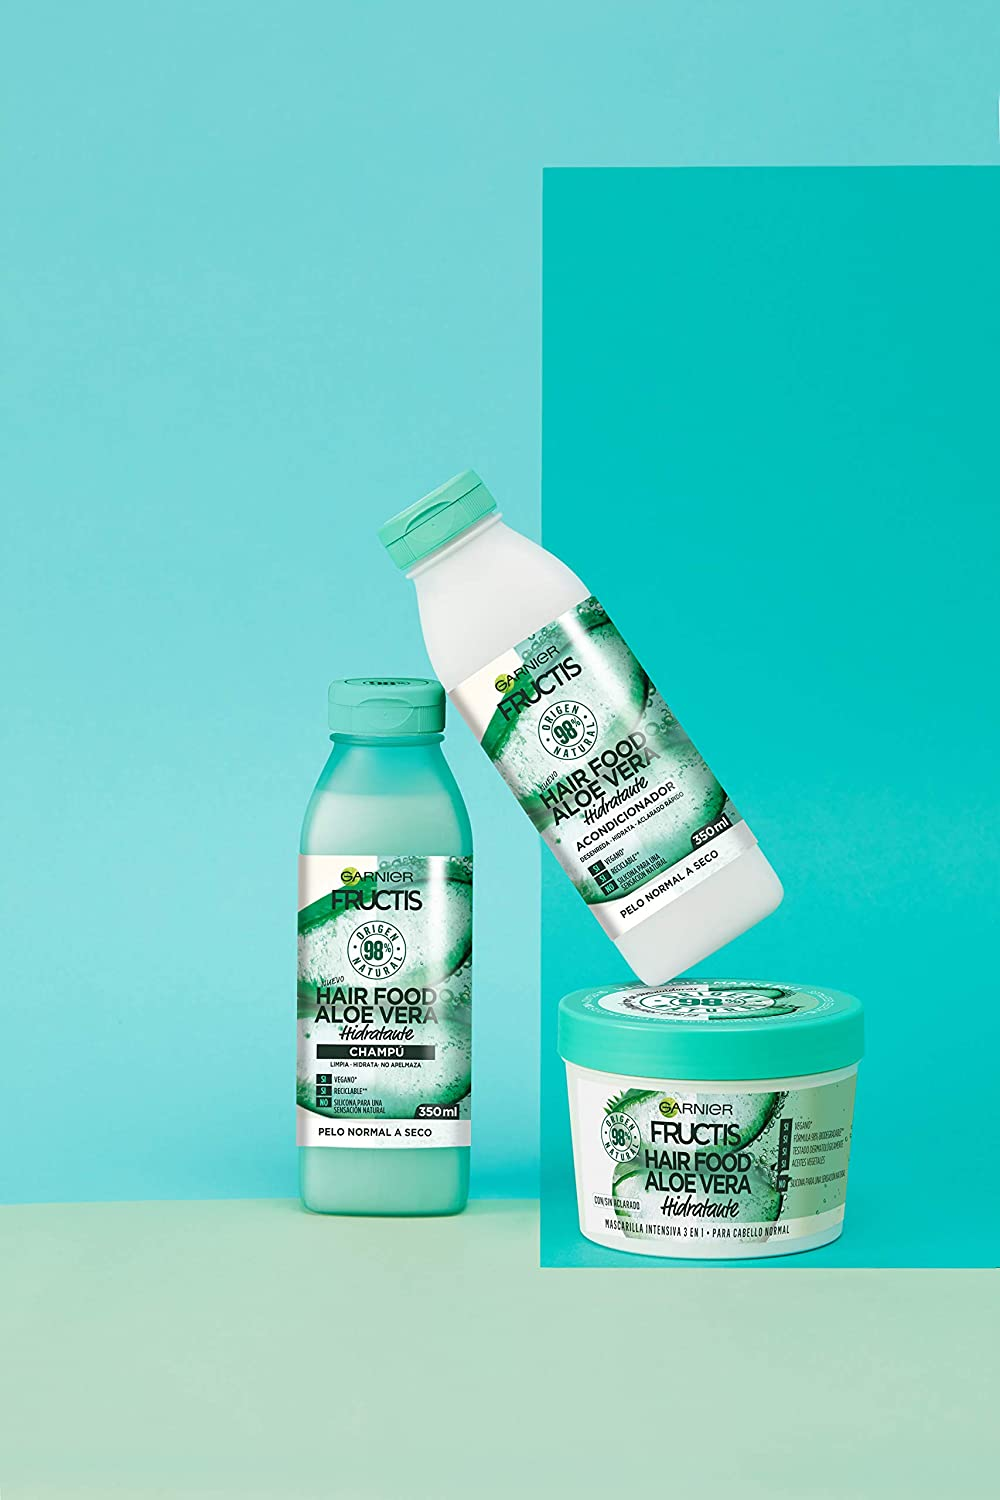 Garnier Fructis Hair Food Aloe Vera